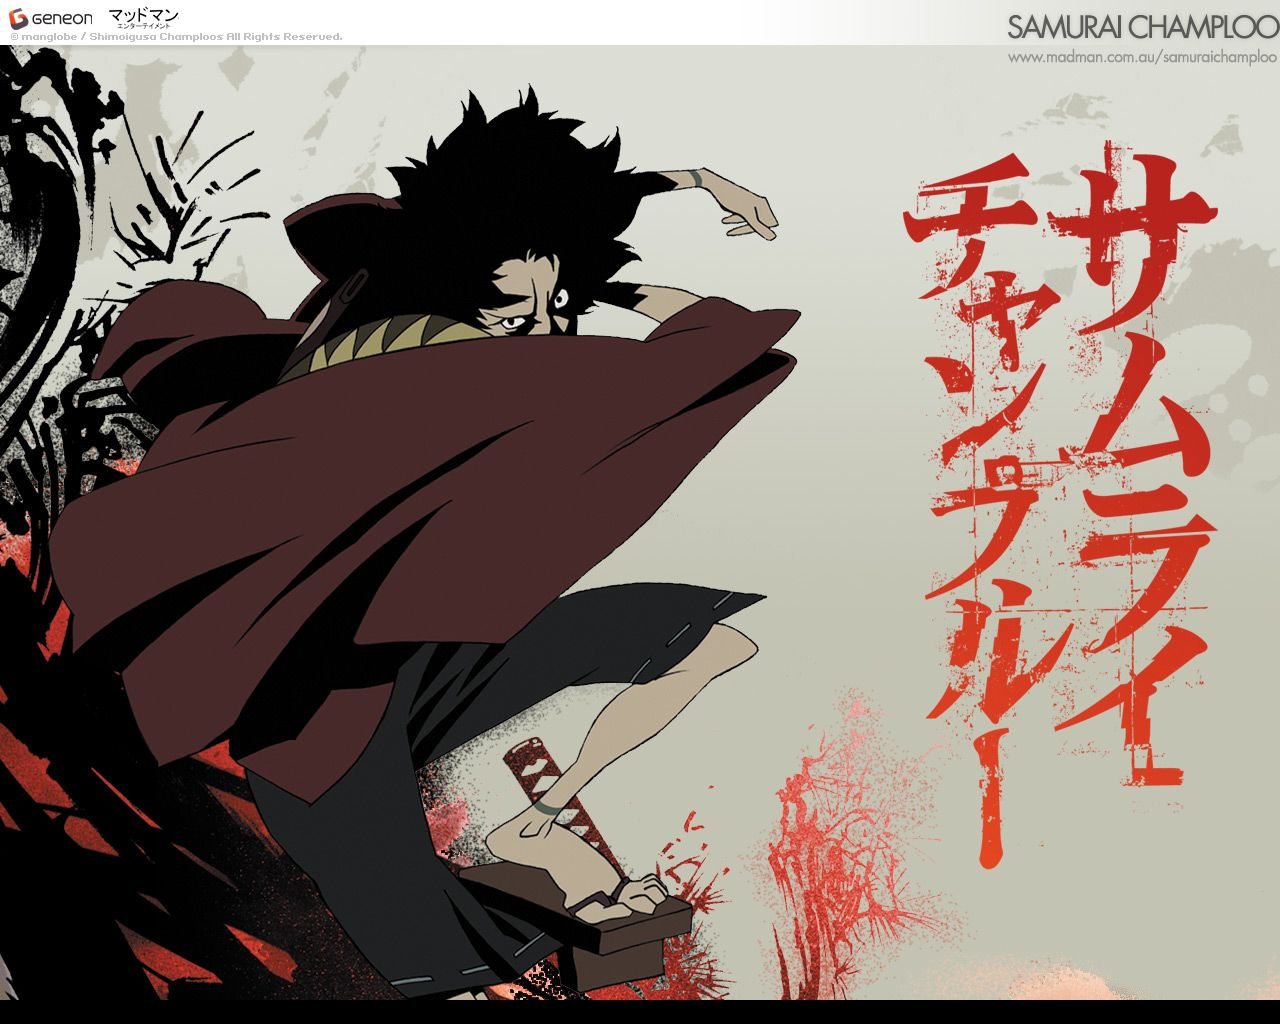 Samurai Champloo Llega A Cartoon Networkwallpapers